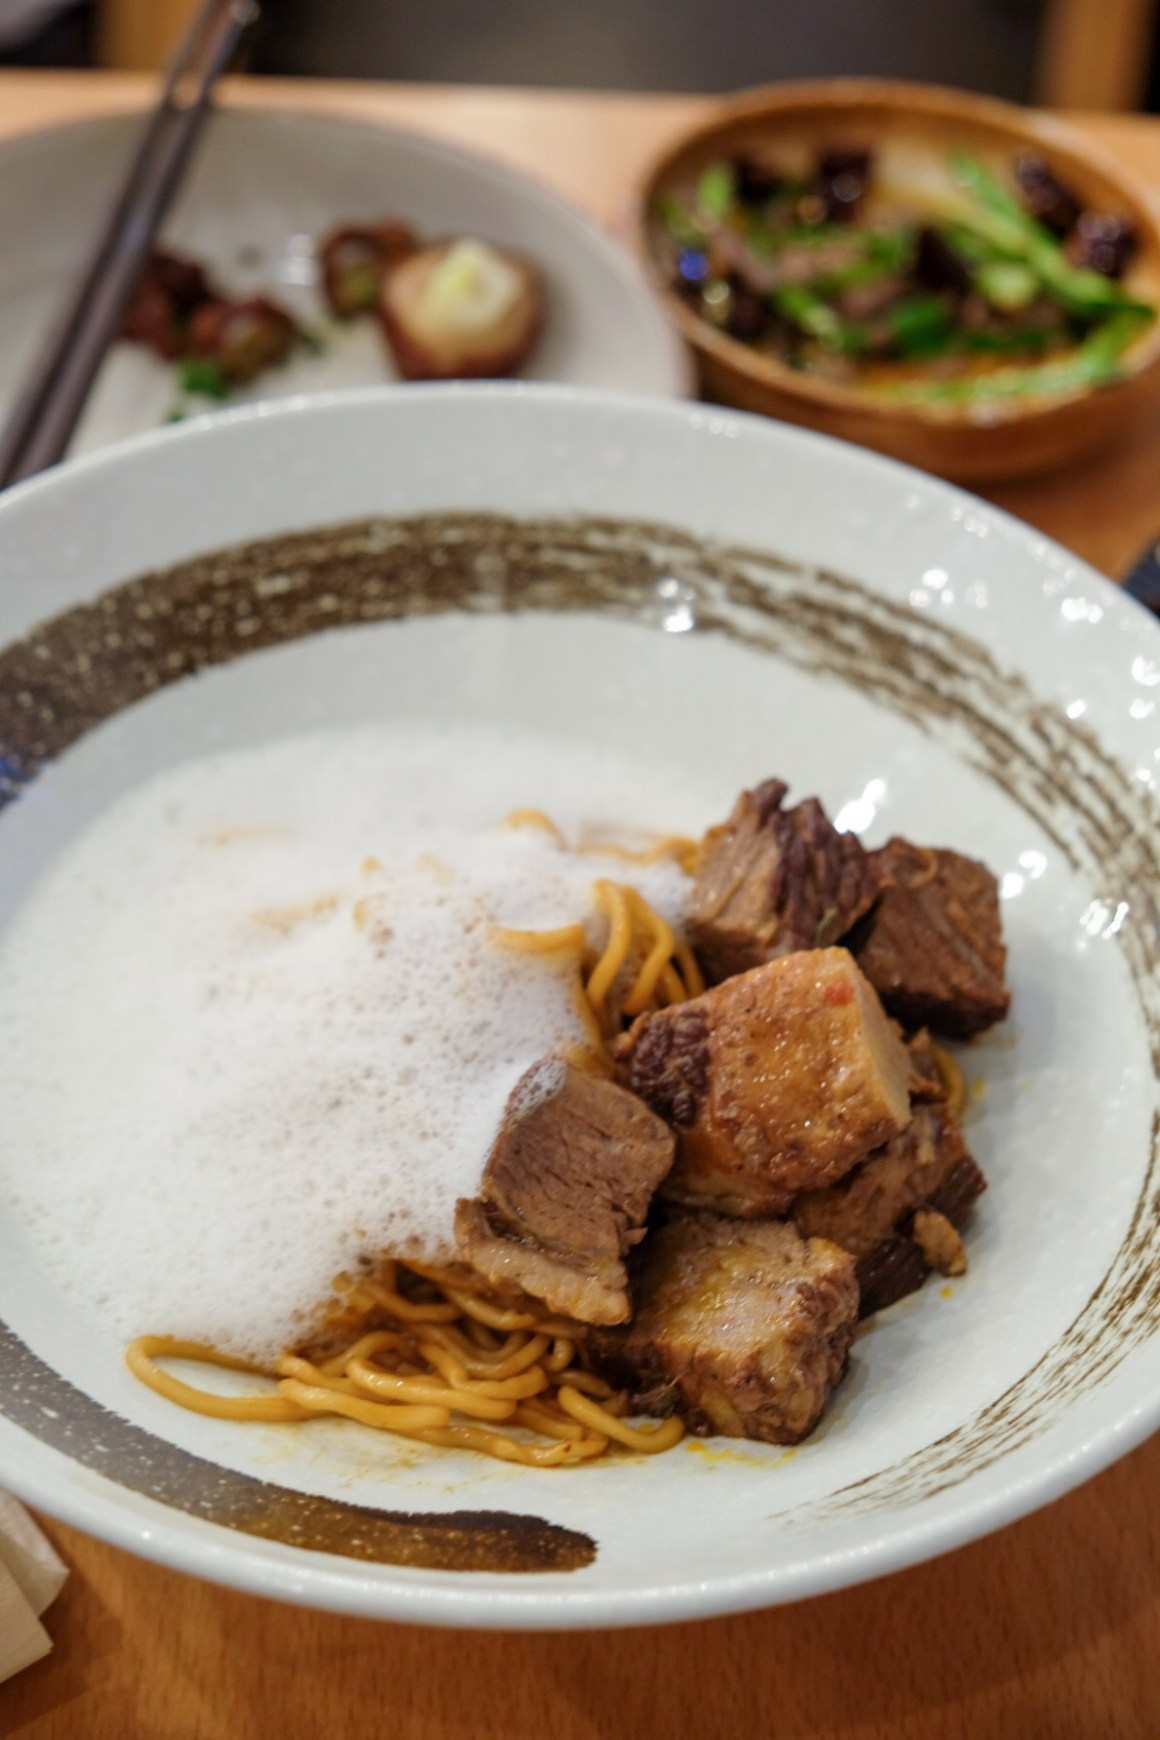 Sichuan Alley: Noodle House By Chef Pang - Red Wine Wagyu Brisket with Truffle Foam Noodles